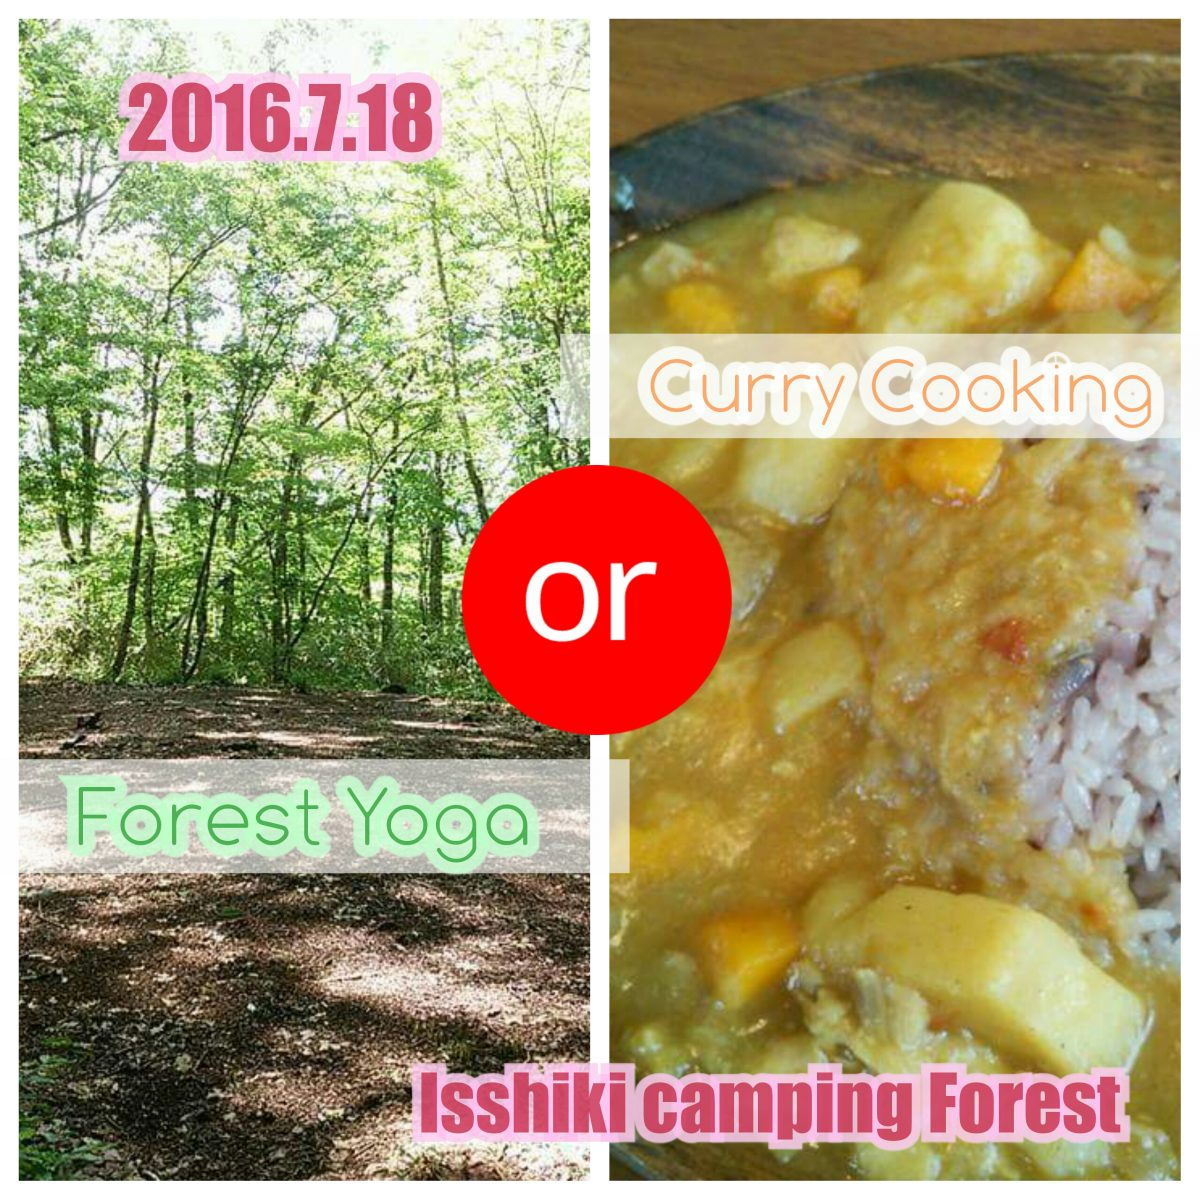 「Forest Yoga」or「Curry Cooking」